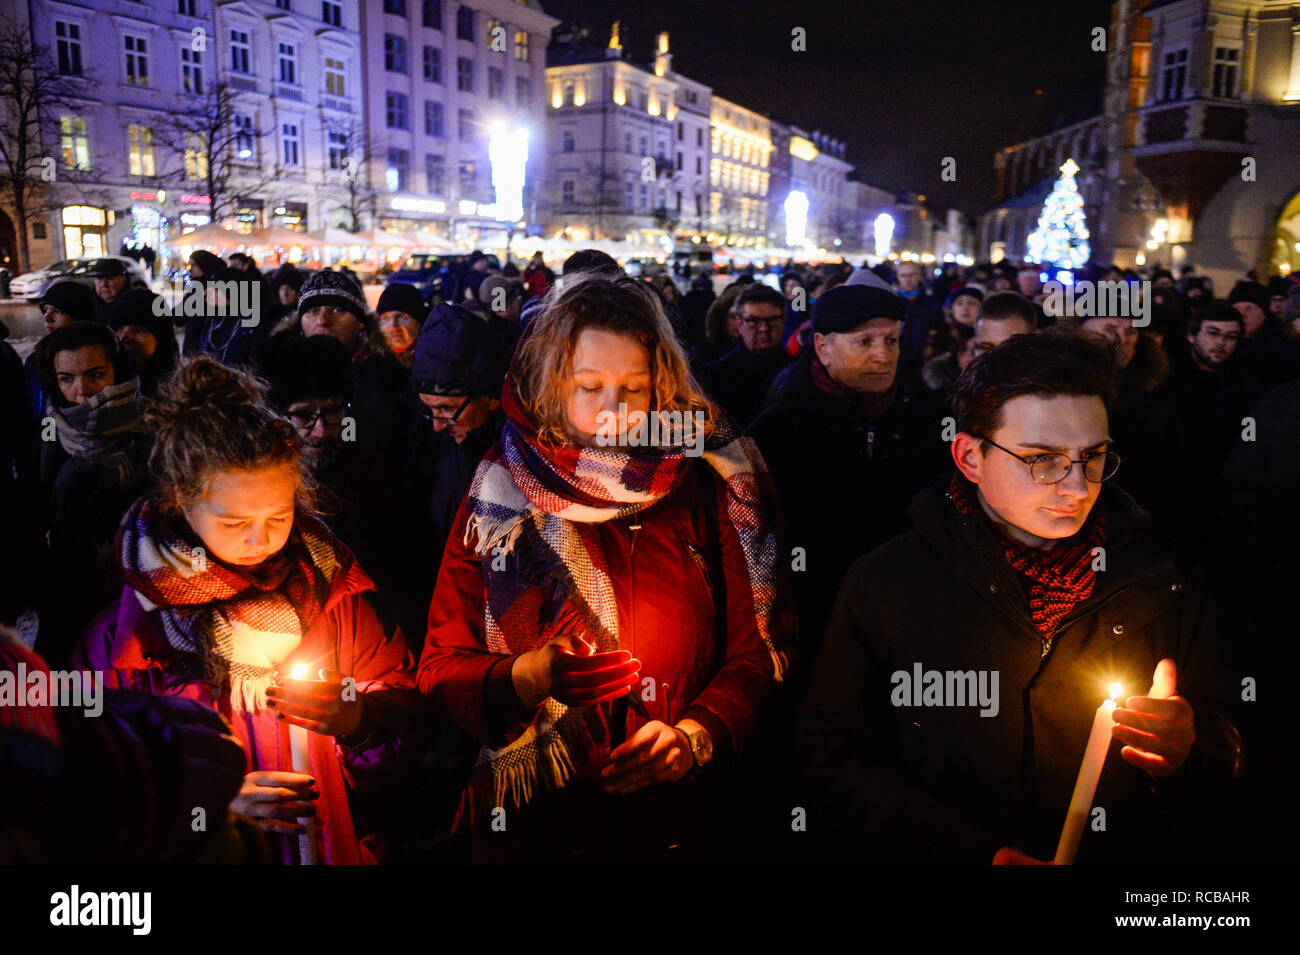 Krakow, Poland. 14th Jan, 2019. People are seen taking part during the gathering to mourn the Mayor of Gdansk, Pawel Adamowicz and to oppose hate and violence at the Main Square.Pawel Adamowicz, the mayor of the Polish city of Gdansk died after being stabbed several times on stage during the Great Orchestra of Christmas Charity, Poland's most important charity on Sunday evening. The alleged assailant, a man from Gdansk with a record of violent crime, was released from prison last month. Credit: ZUMA Press, Inc./Alamy Live News - Stock Image